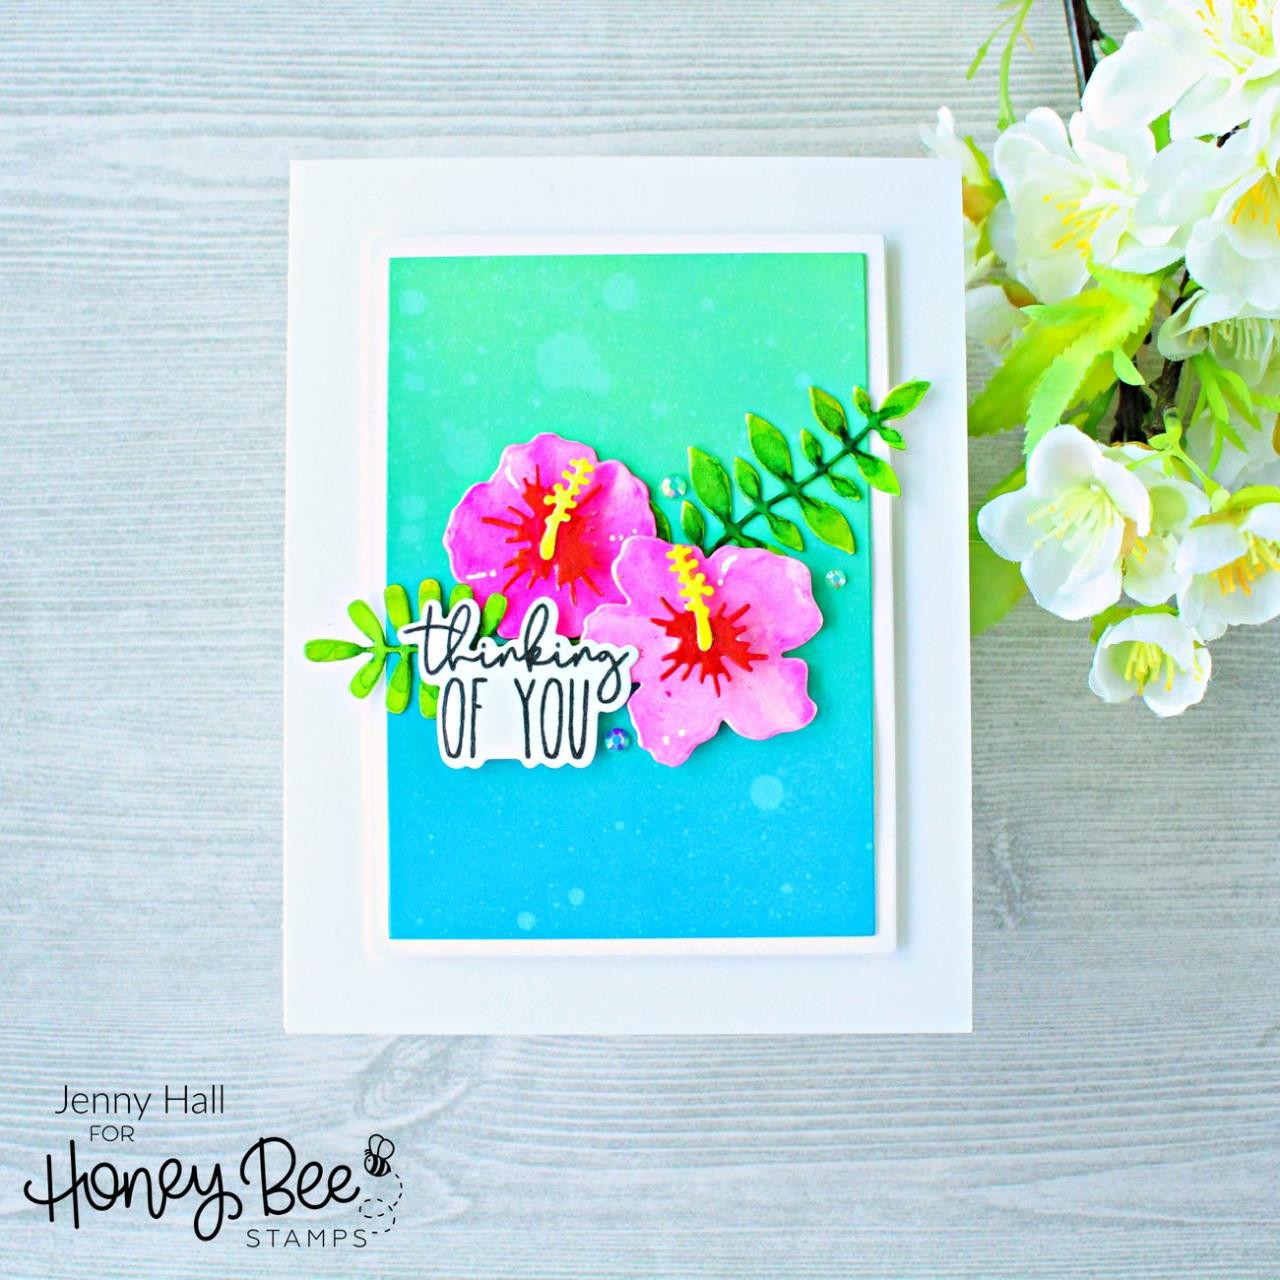 Pearfect Sentiments, Honey Bee Clear Stamps - 652827603225